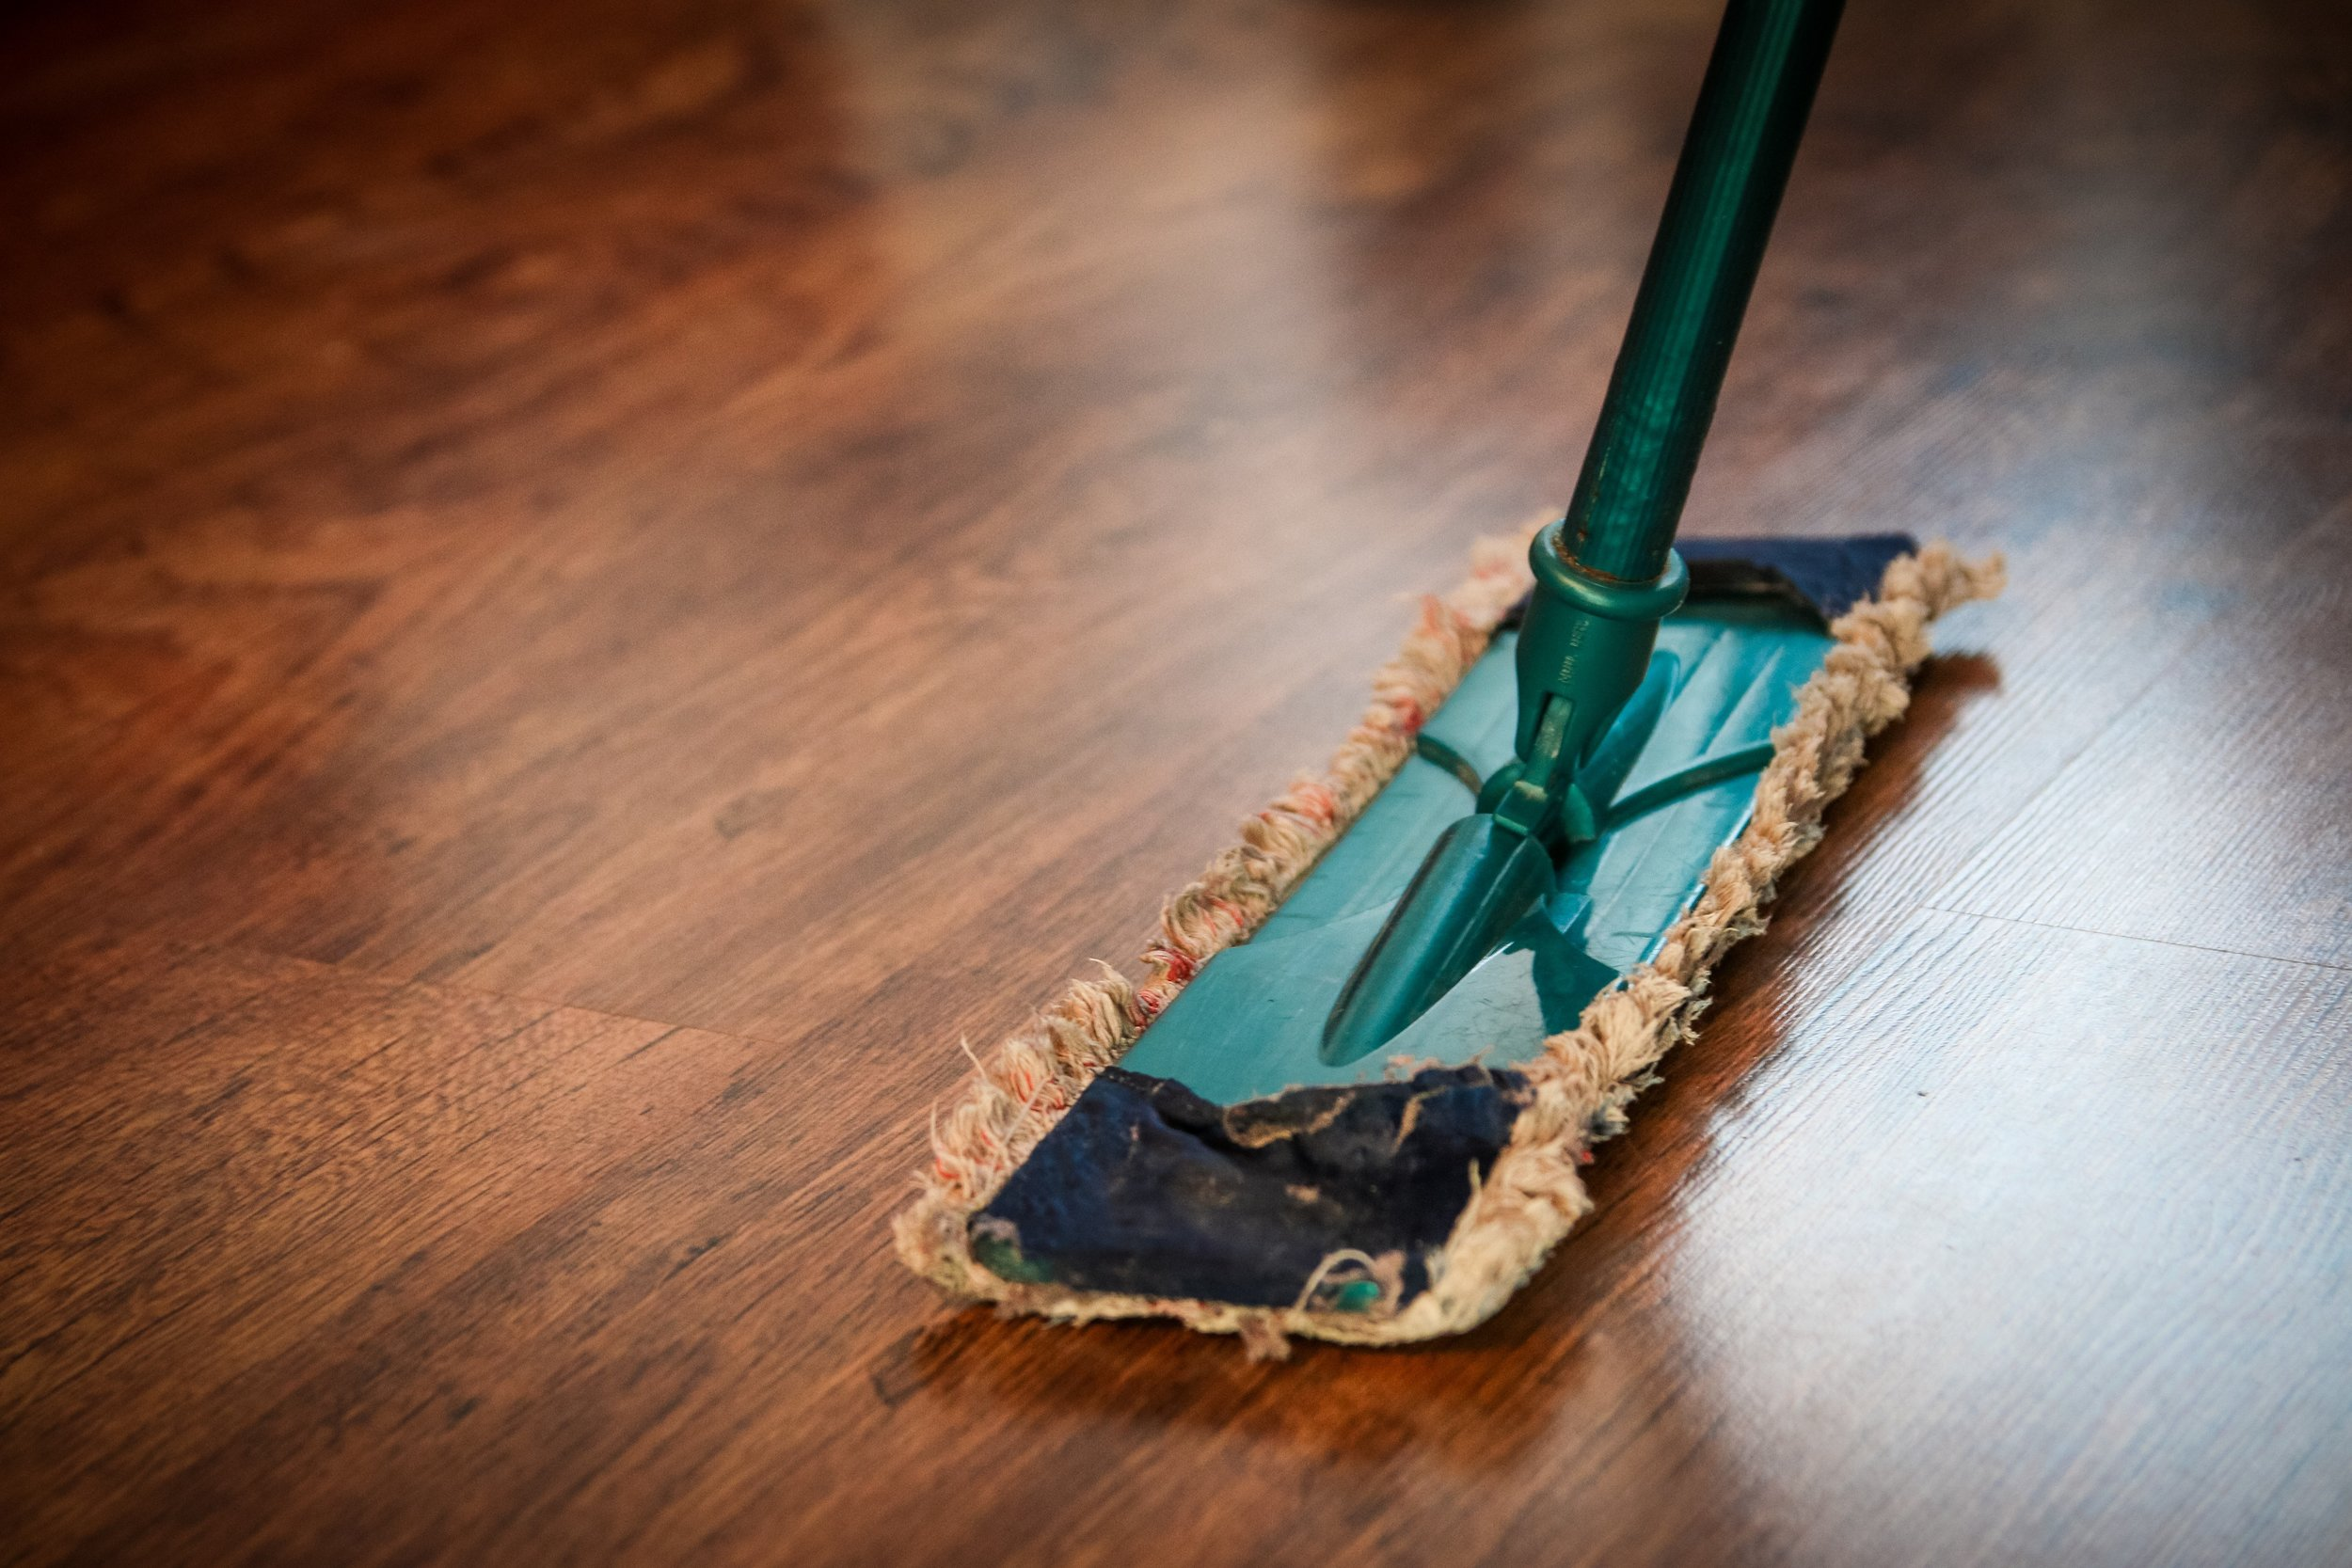 An image of a mop cleaning a wooden floor